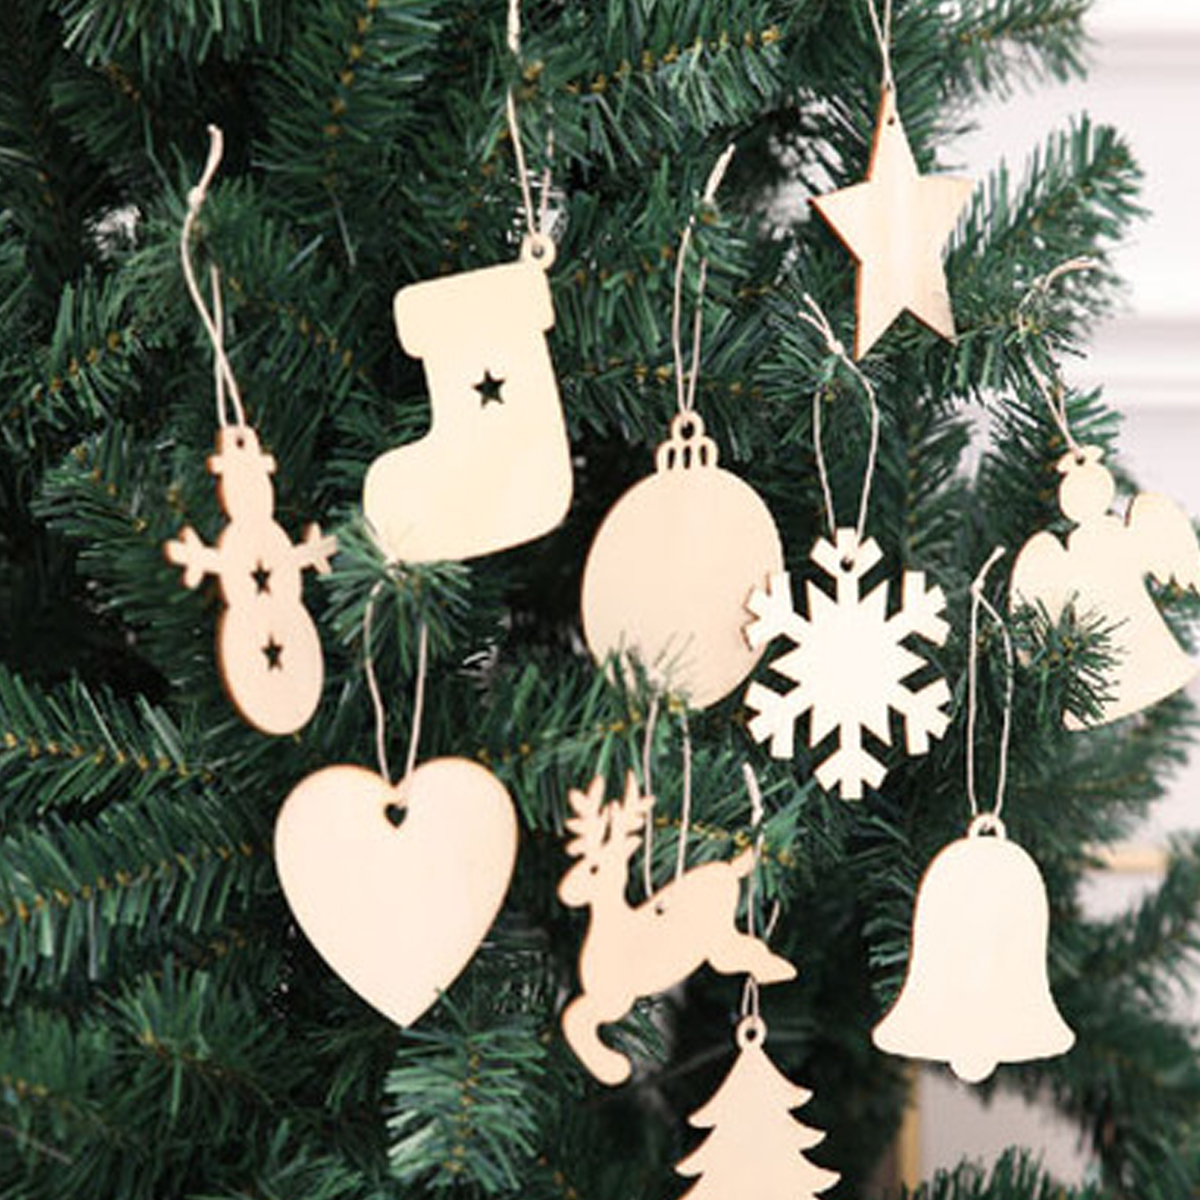 Aliexpresscom Buy 10pcsset Diy Wooden Shoes Ornaments Tree Santa Claus Boots Bells Christmas Tree Hanging Home Xmas Party Christmas Decorations